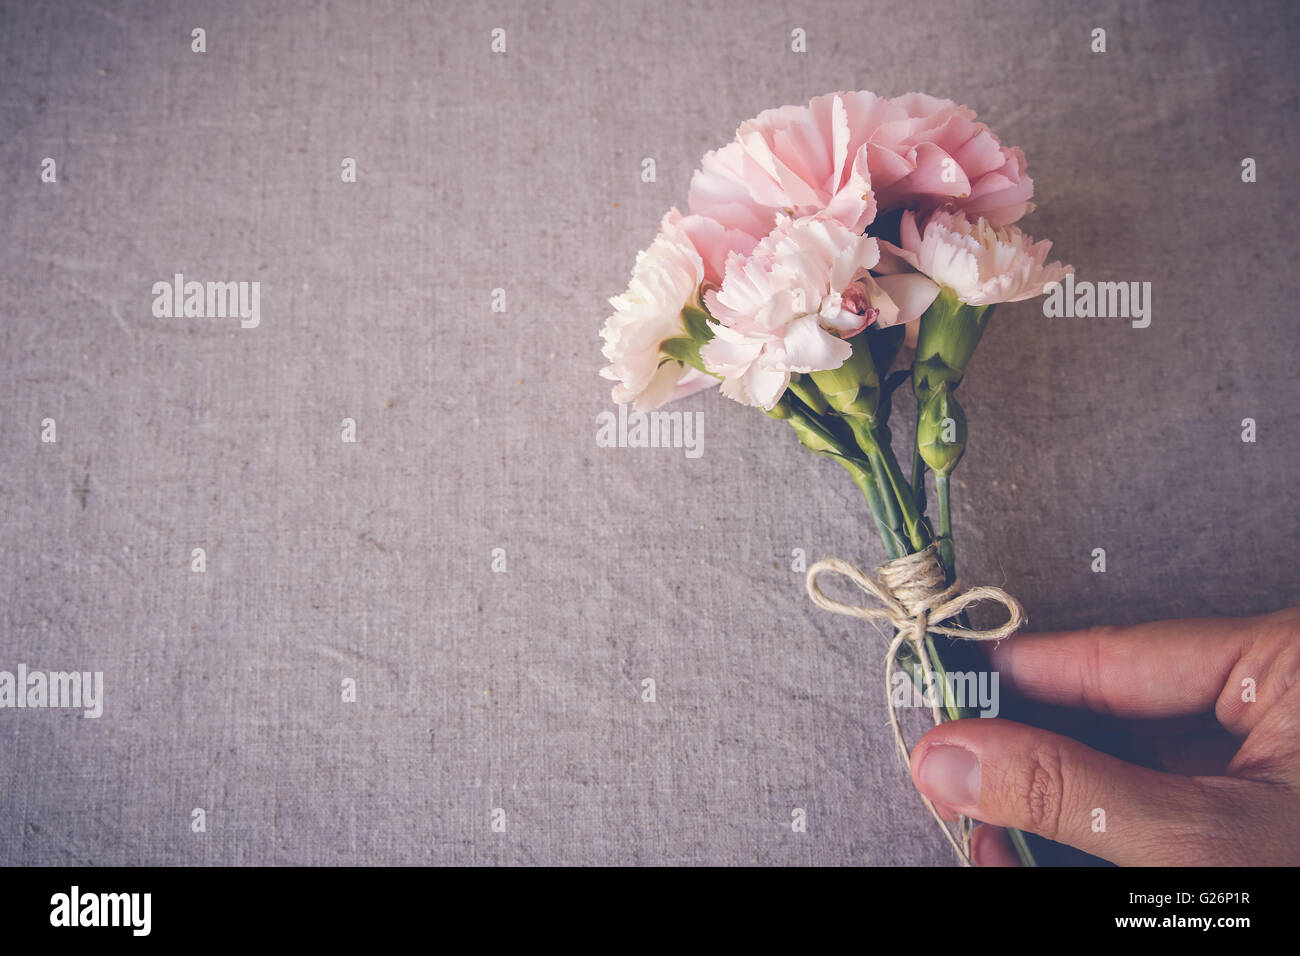 Flowers bouquet stock photos flowers bouquet stock images alamy hand holding pink carnation flowers bouquet copy space background stock image izmirmasajfo